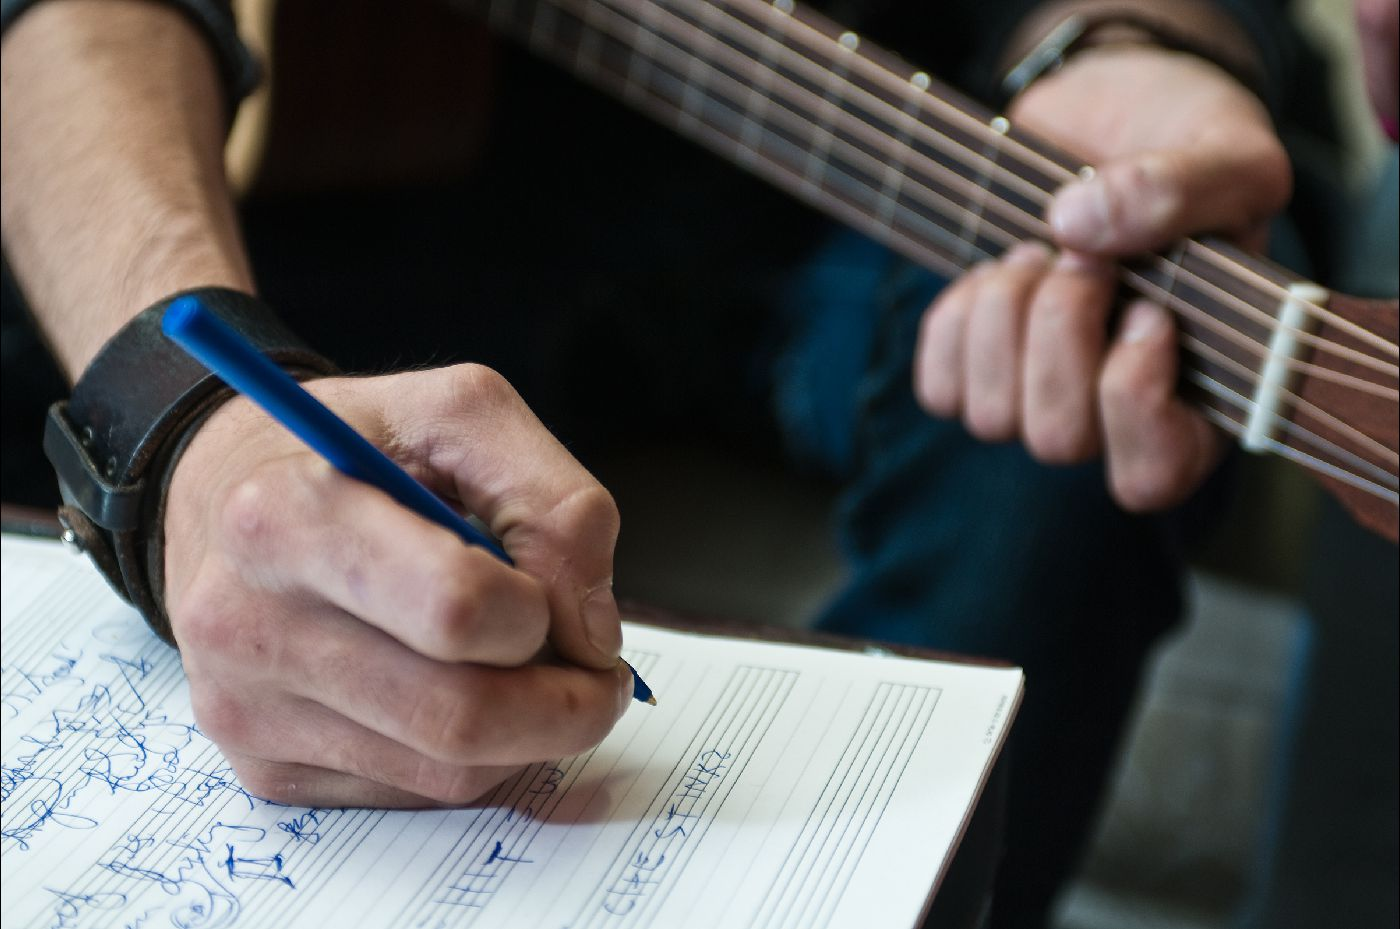 Guitarist songwriting